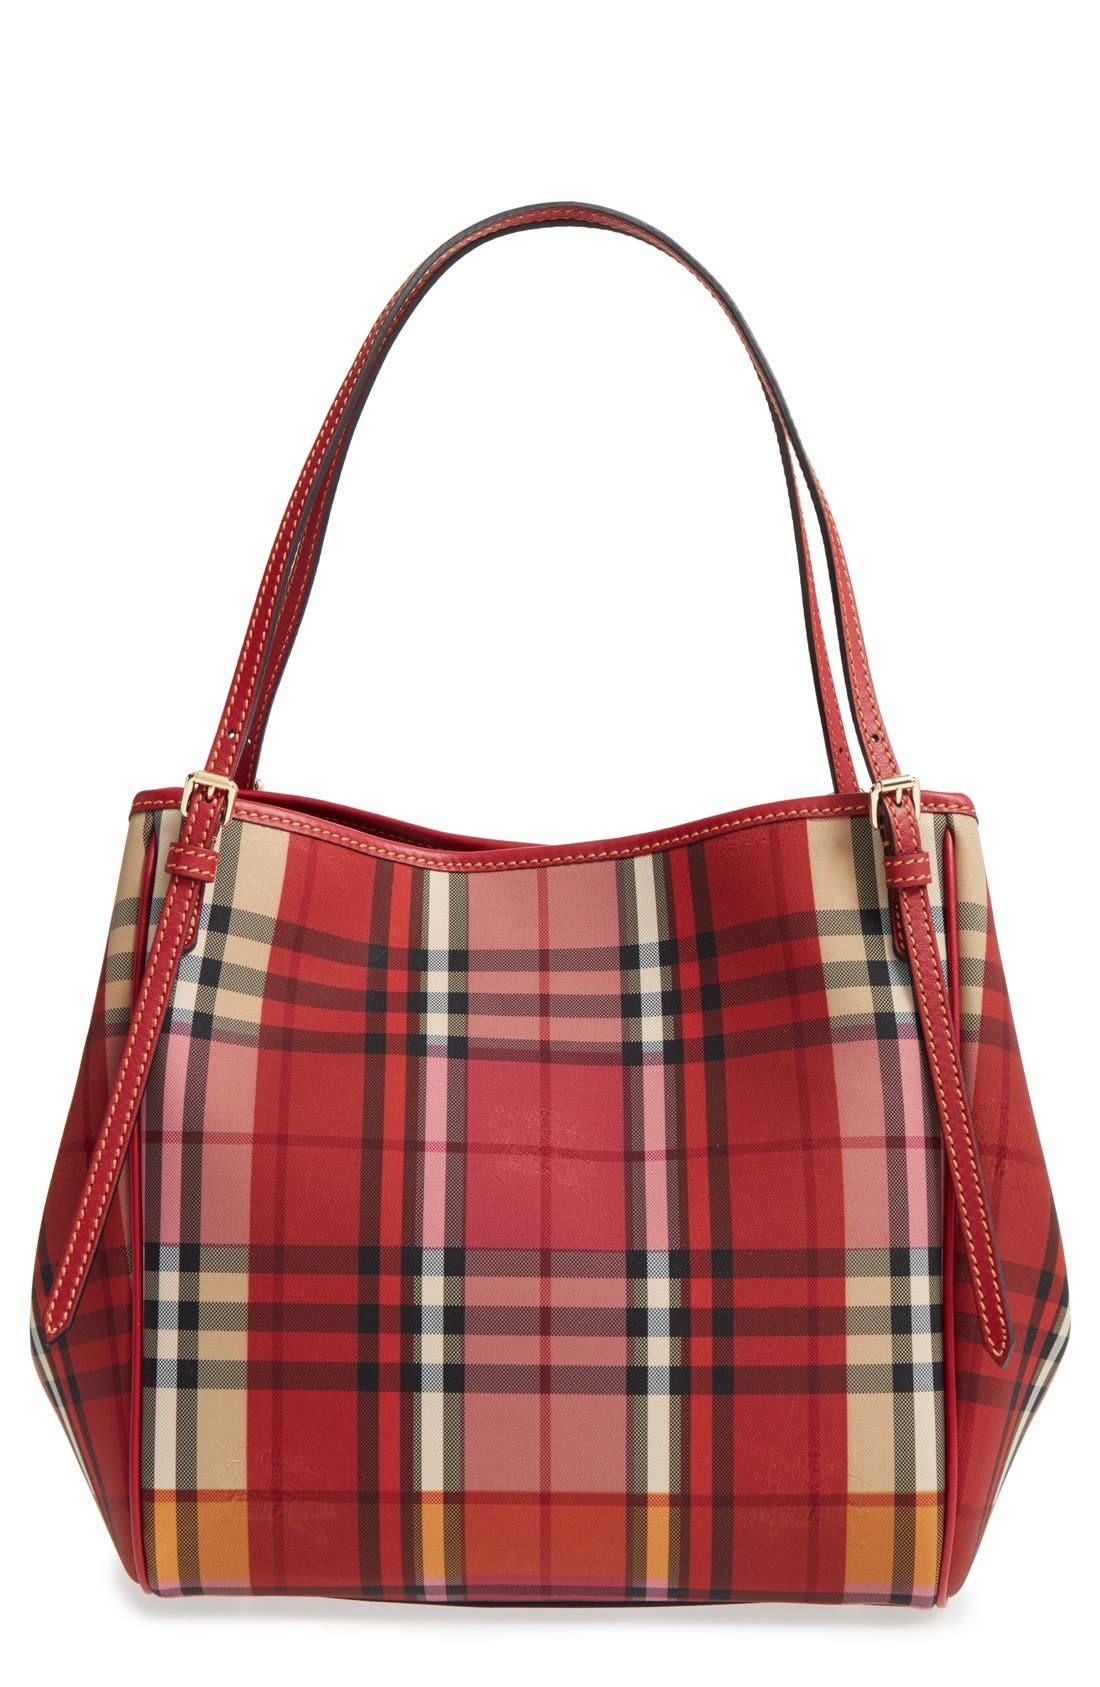 BURBERRY 'Small Canter' Horseferry Check & Leather Tote